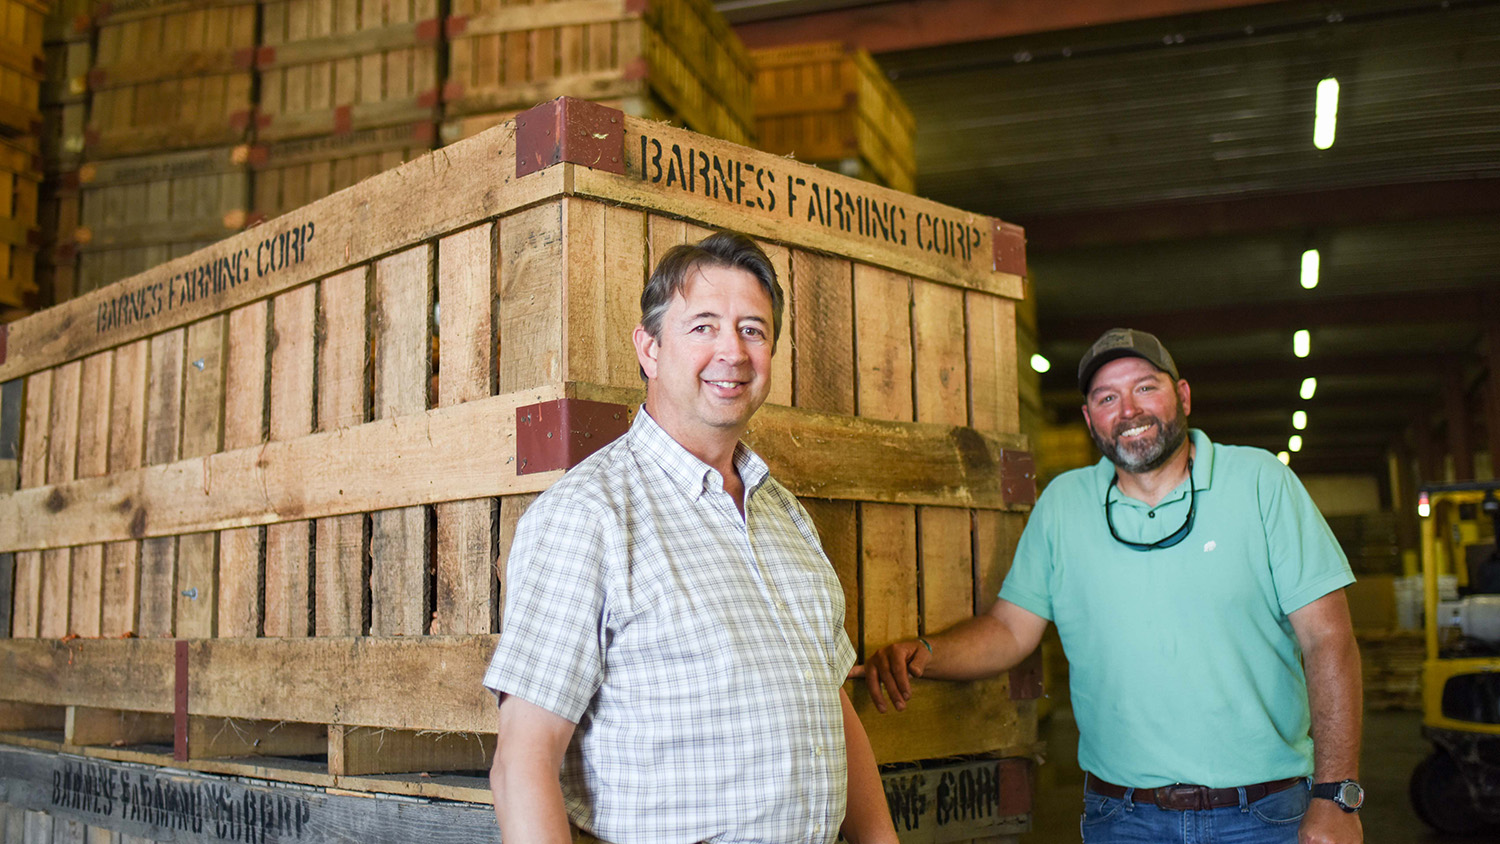 Johnny Barnes and Bryan Salmons in a facility where sweet potatoes are packaged for sale.